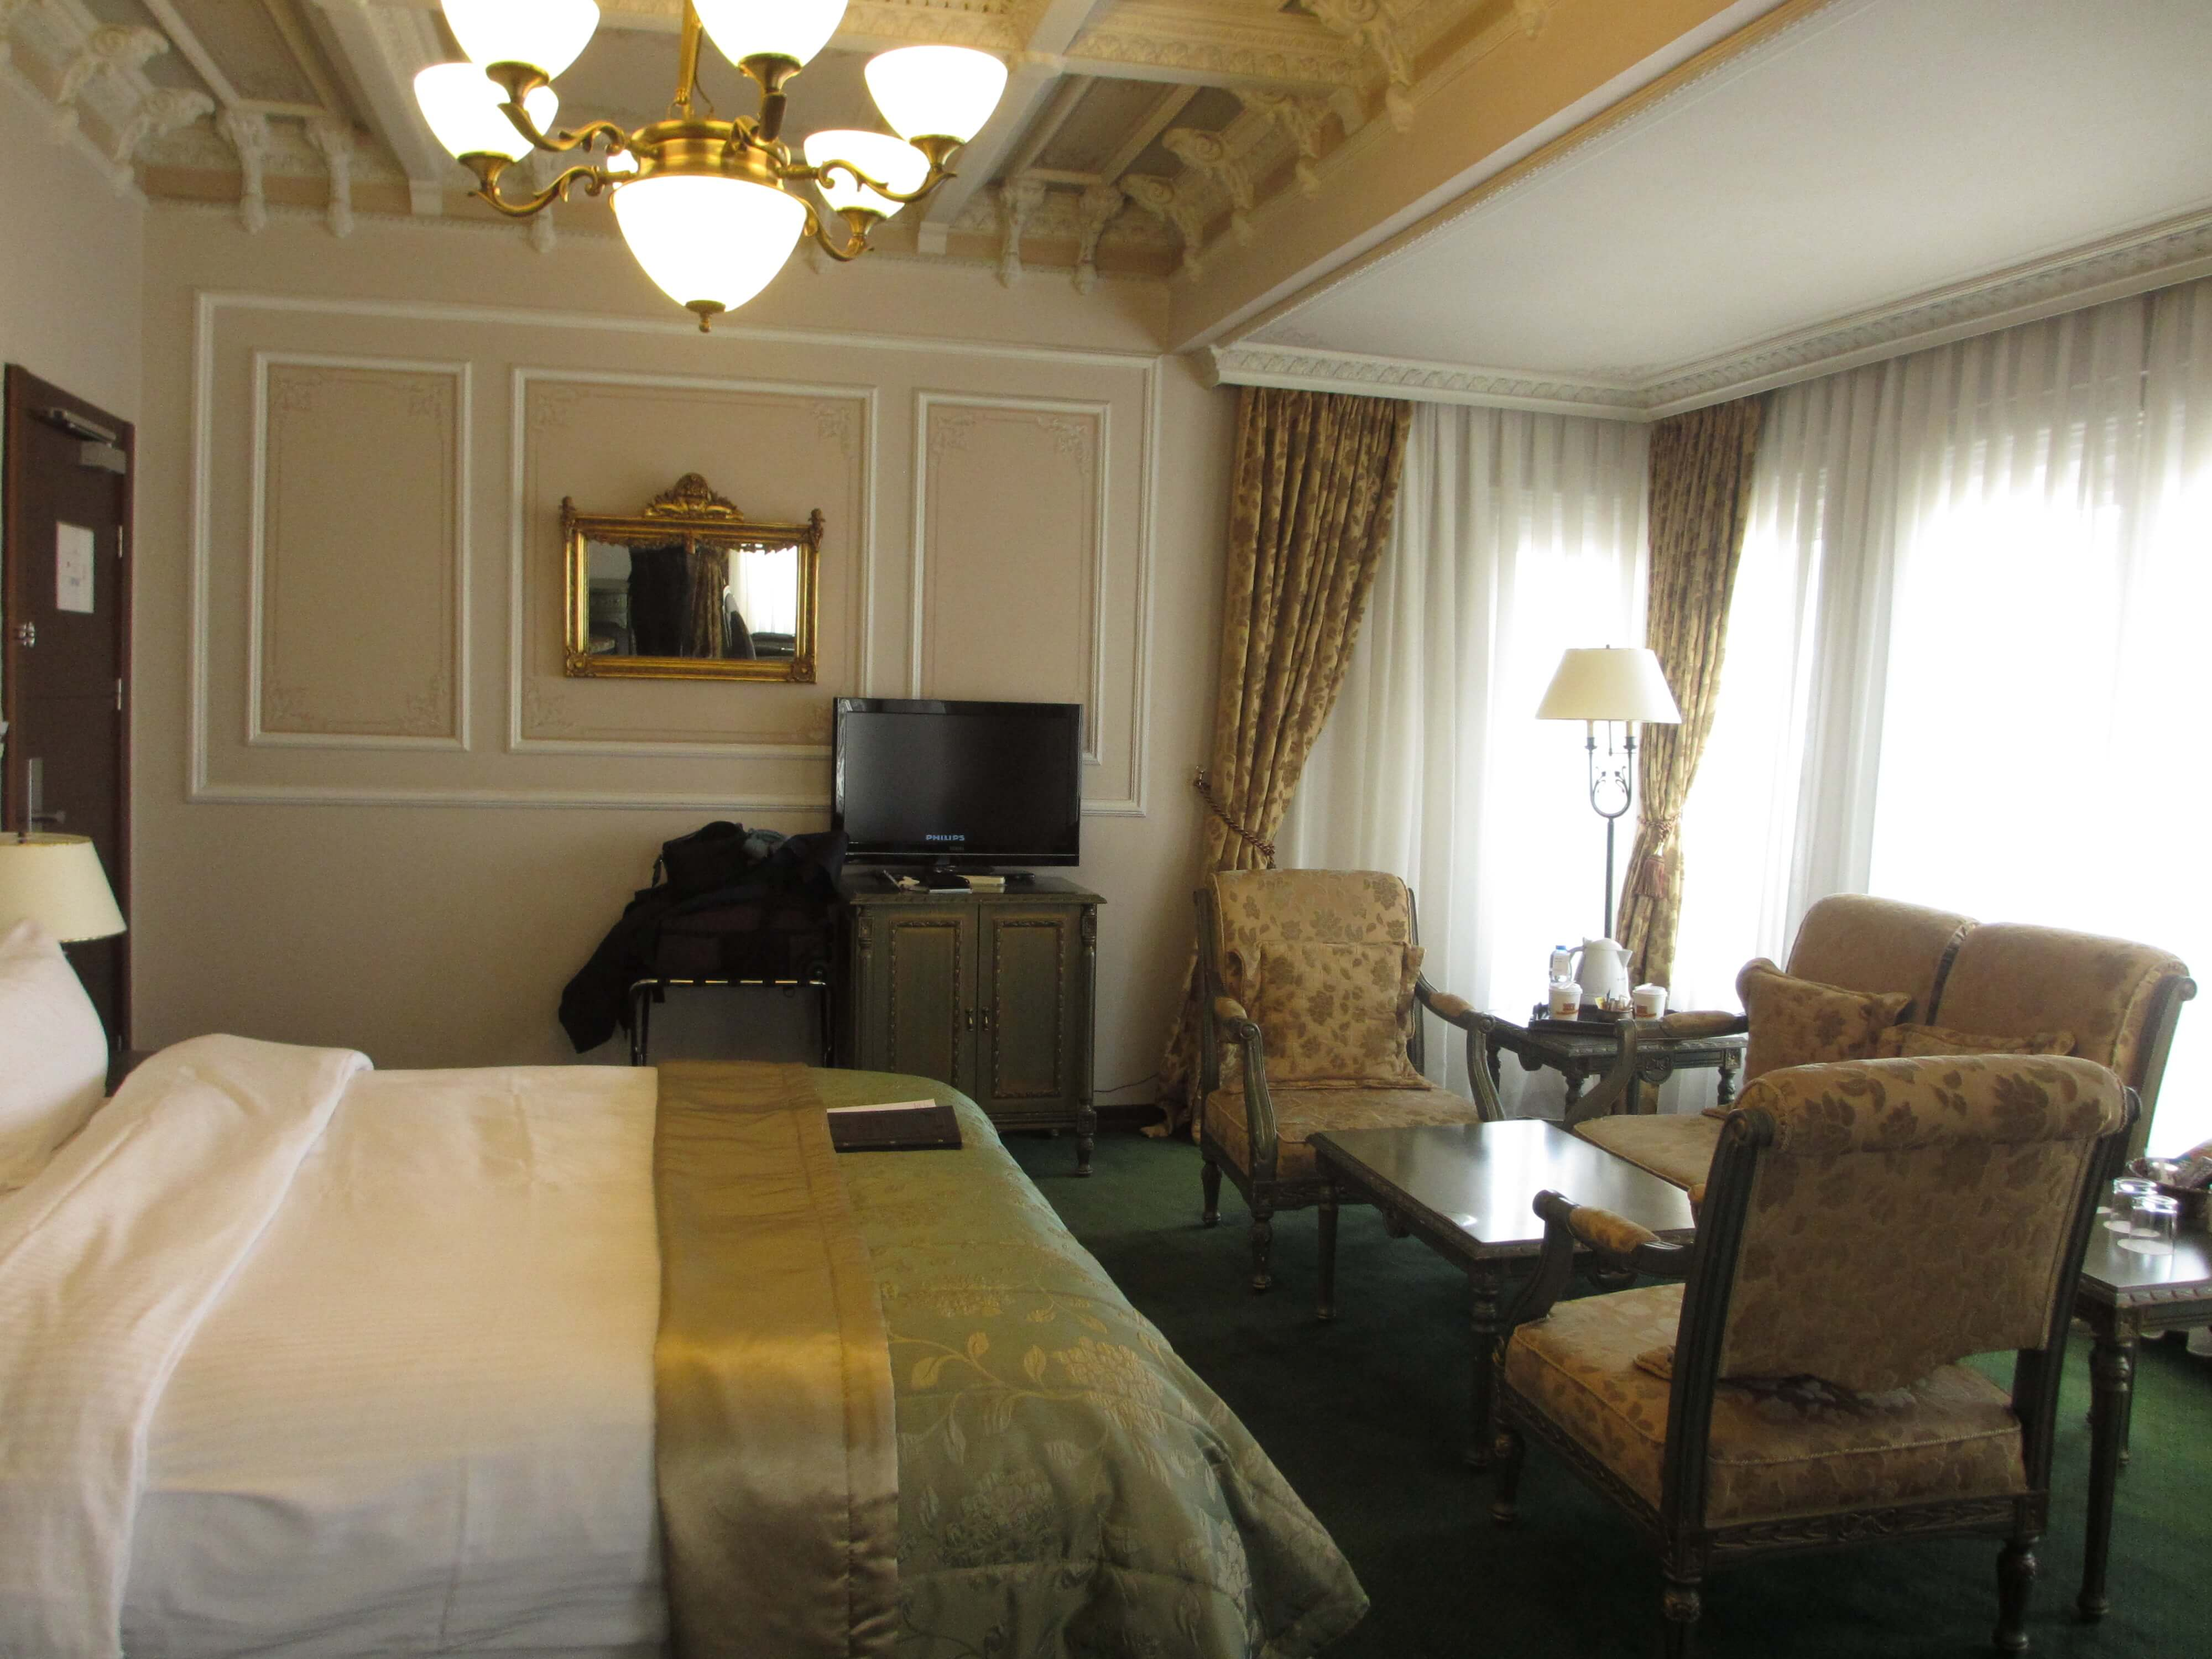 hotel room with king bed and lounge suite